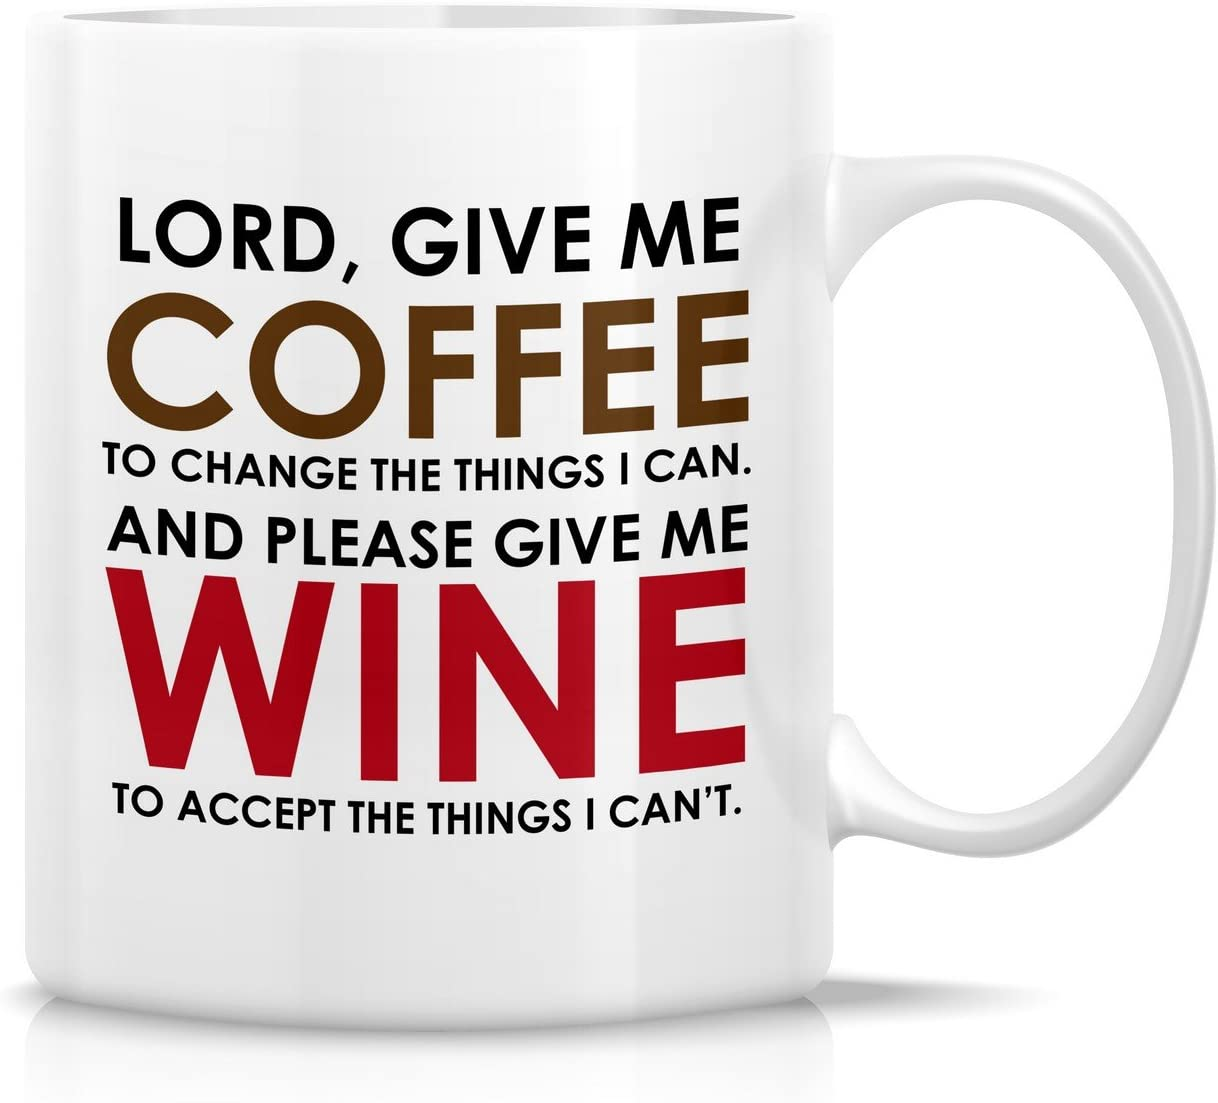 Retreez Funny Mug Lord Give Me Coffee And Please Give Me Wine 11 Oz Ceramic Coffee Mugs Funny Sarcasm Sarcastic Inspirational Birthday Gifts For Friends Coworkers Siblings Dad Or